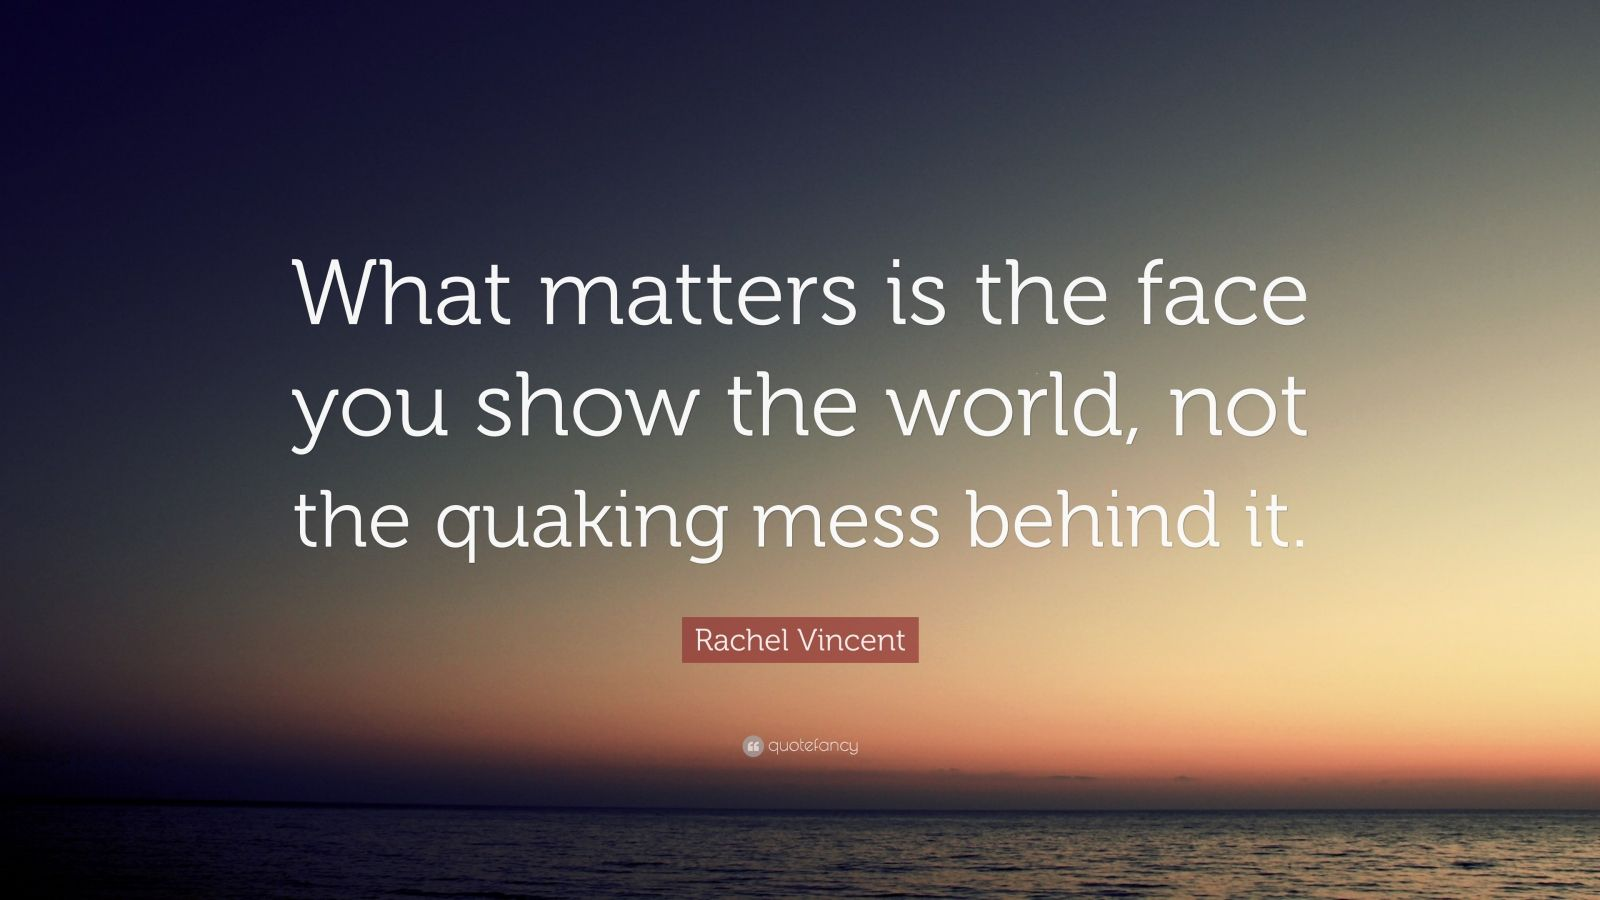 """Rachel Vincent Quote: """"What matters is the face you show the world, not the quaking mess behind it."""""""